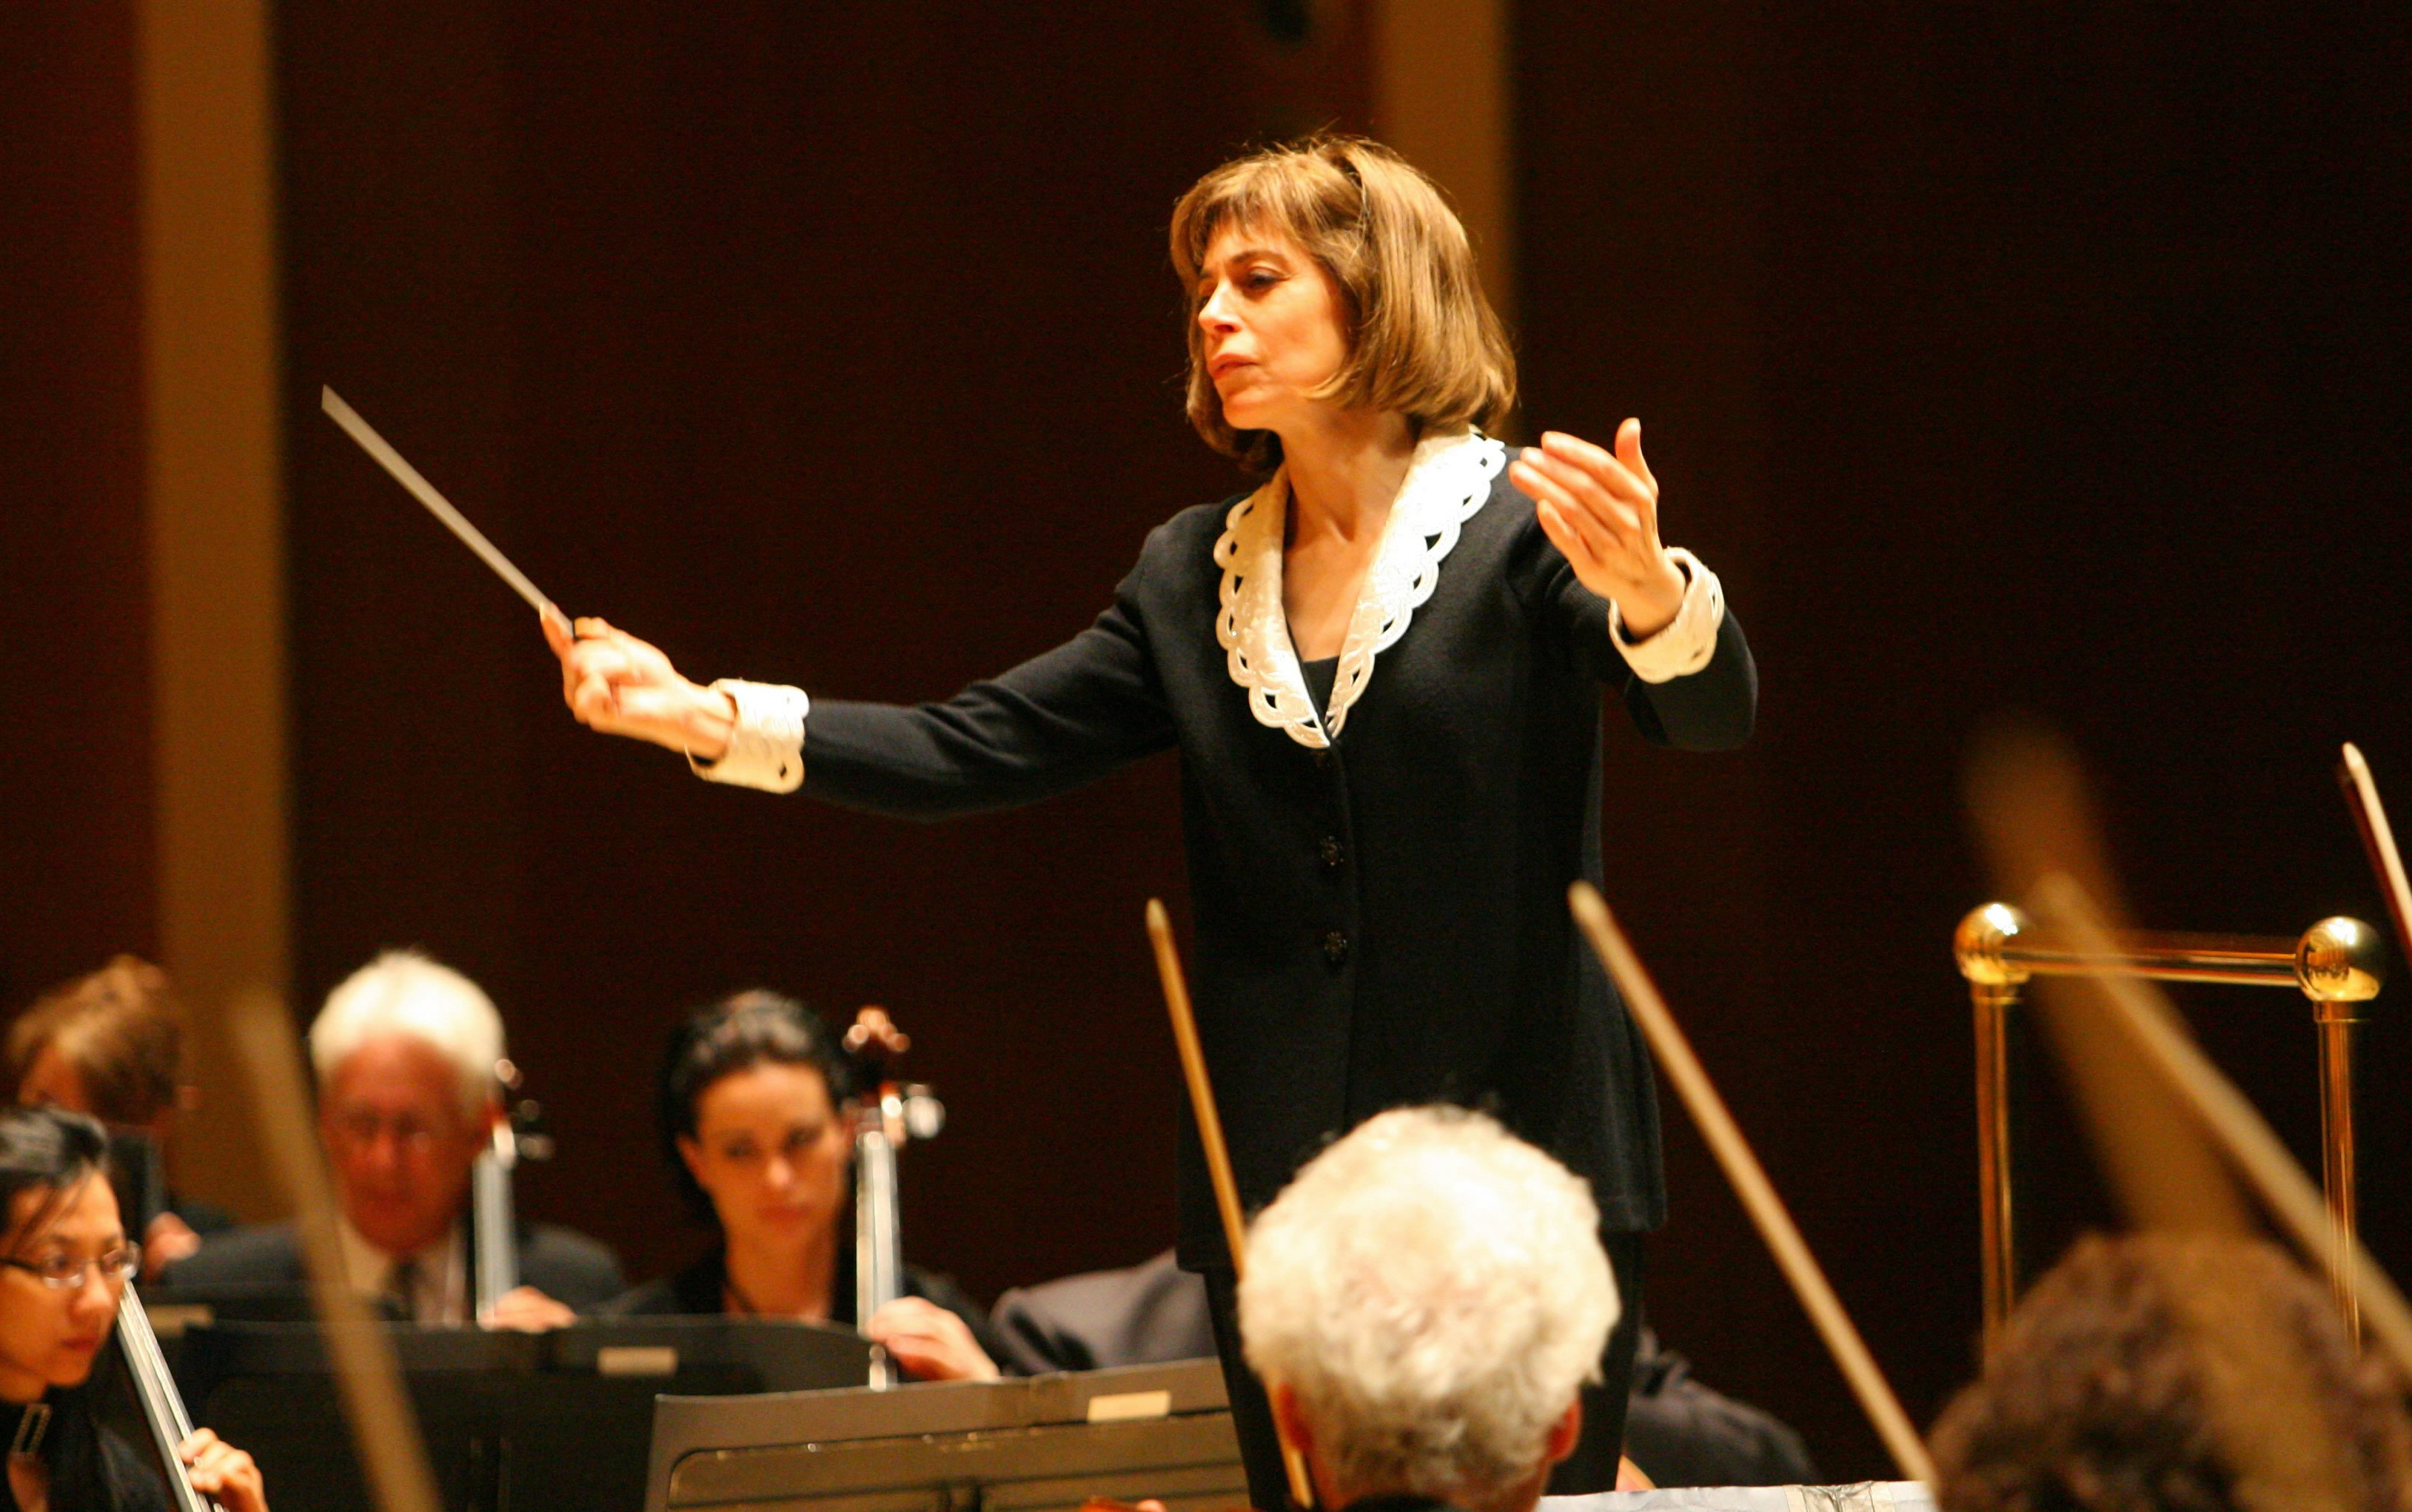 JoAnn Falletta and the Buffalo Philharmonic Orchestra have been performing at a high level for years. (Buffalo news file photo)